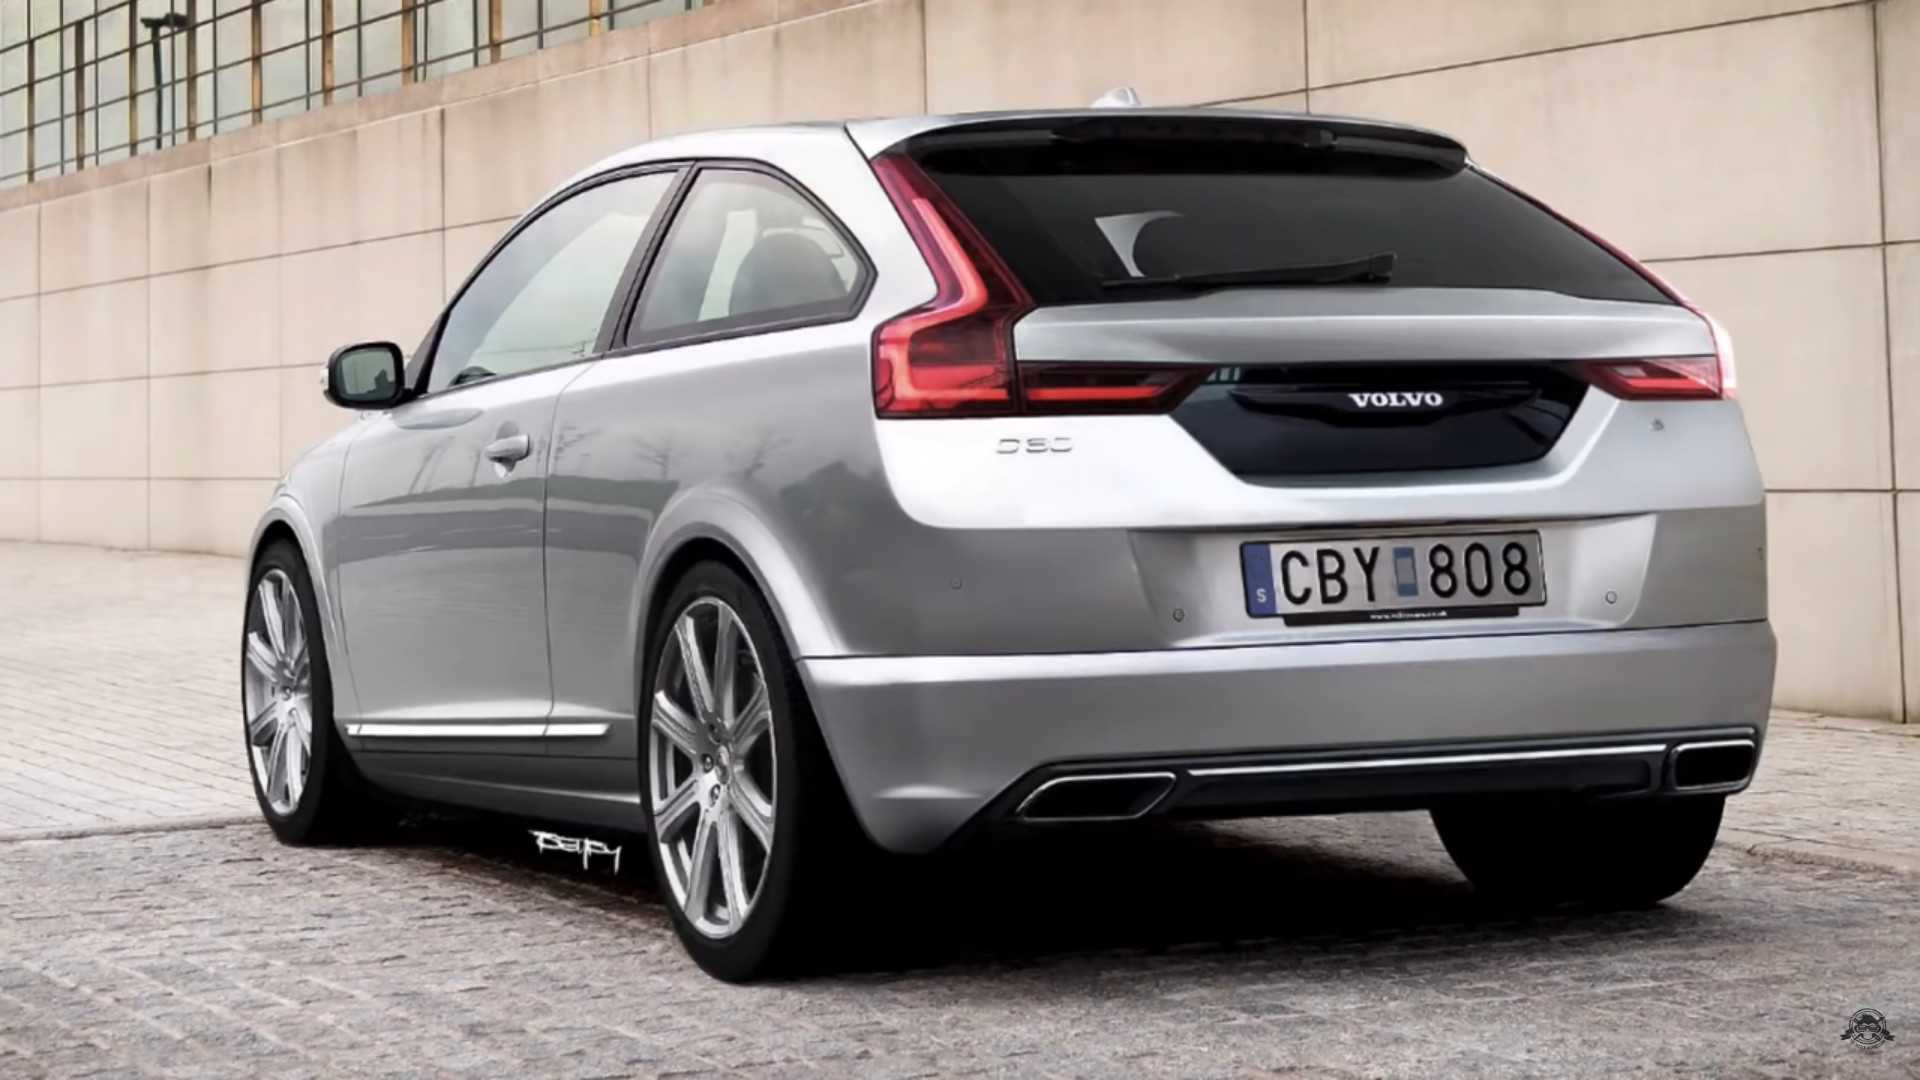 new volvo c30 imagined for the year 2020